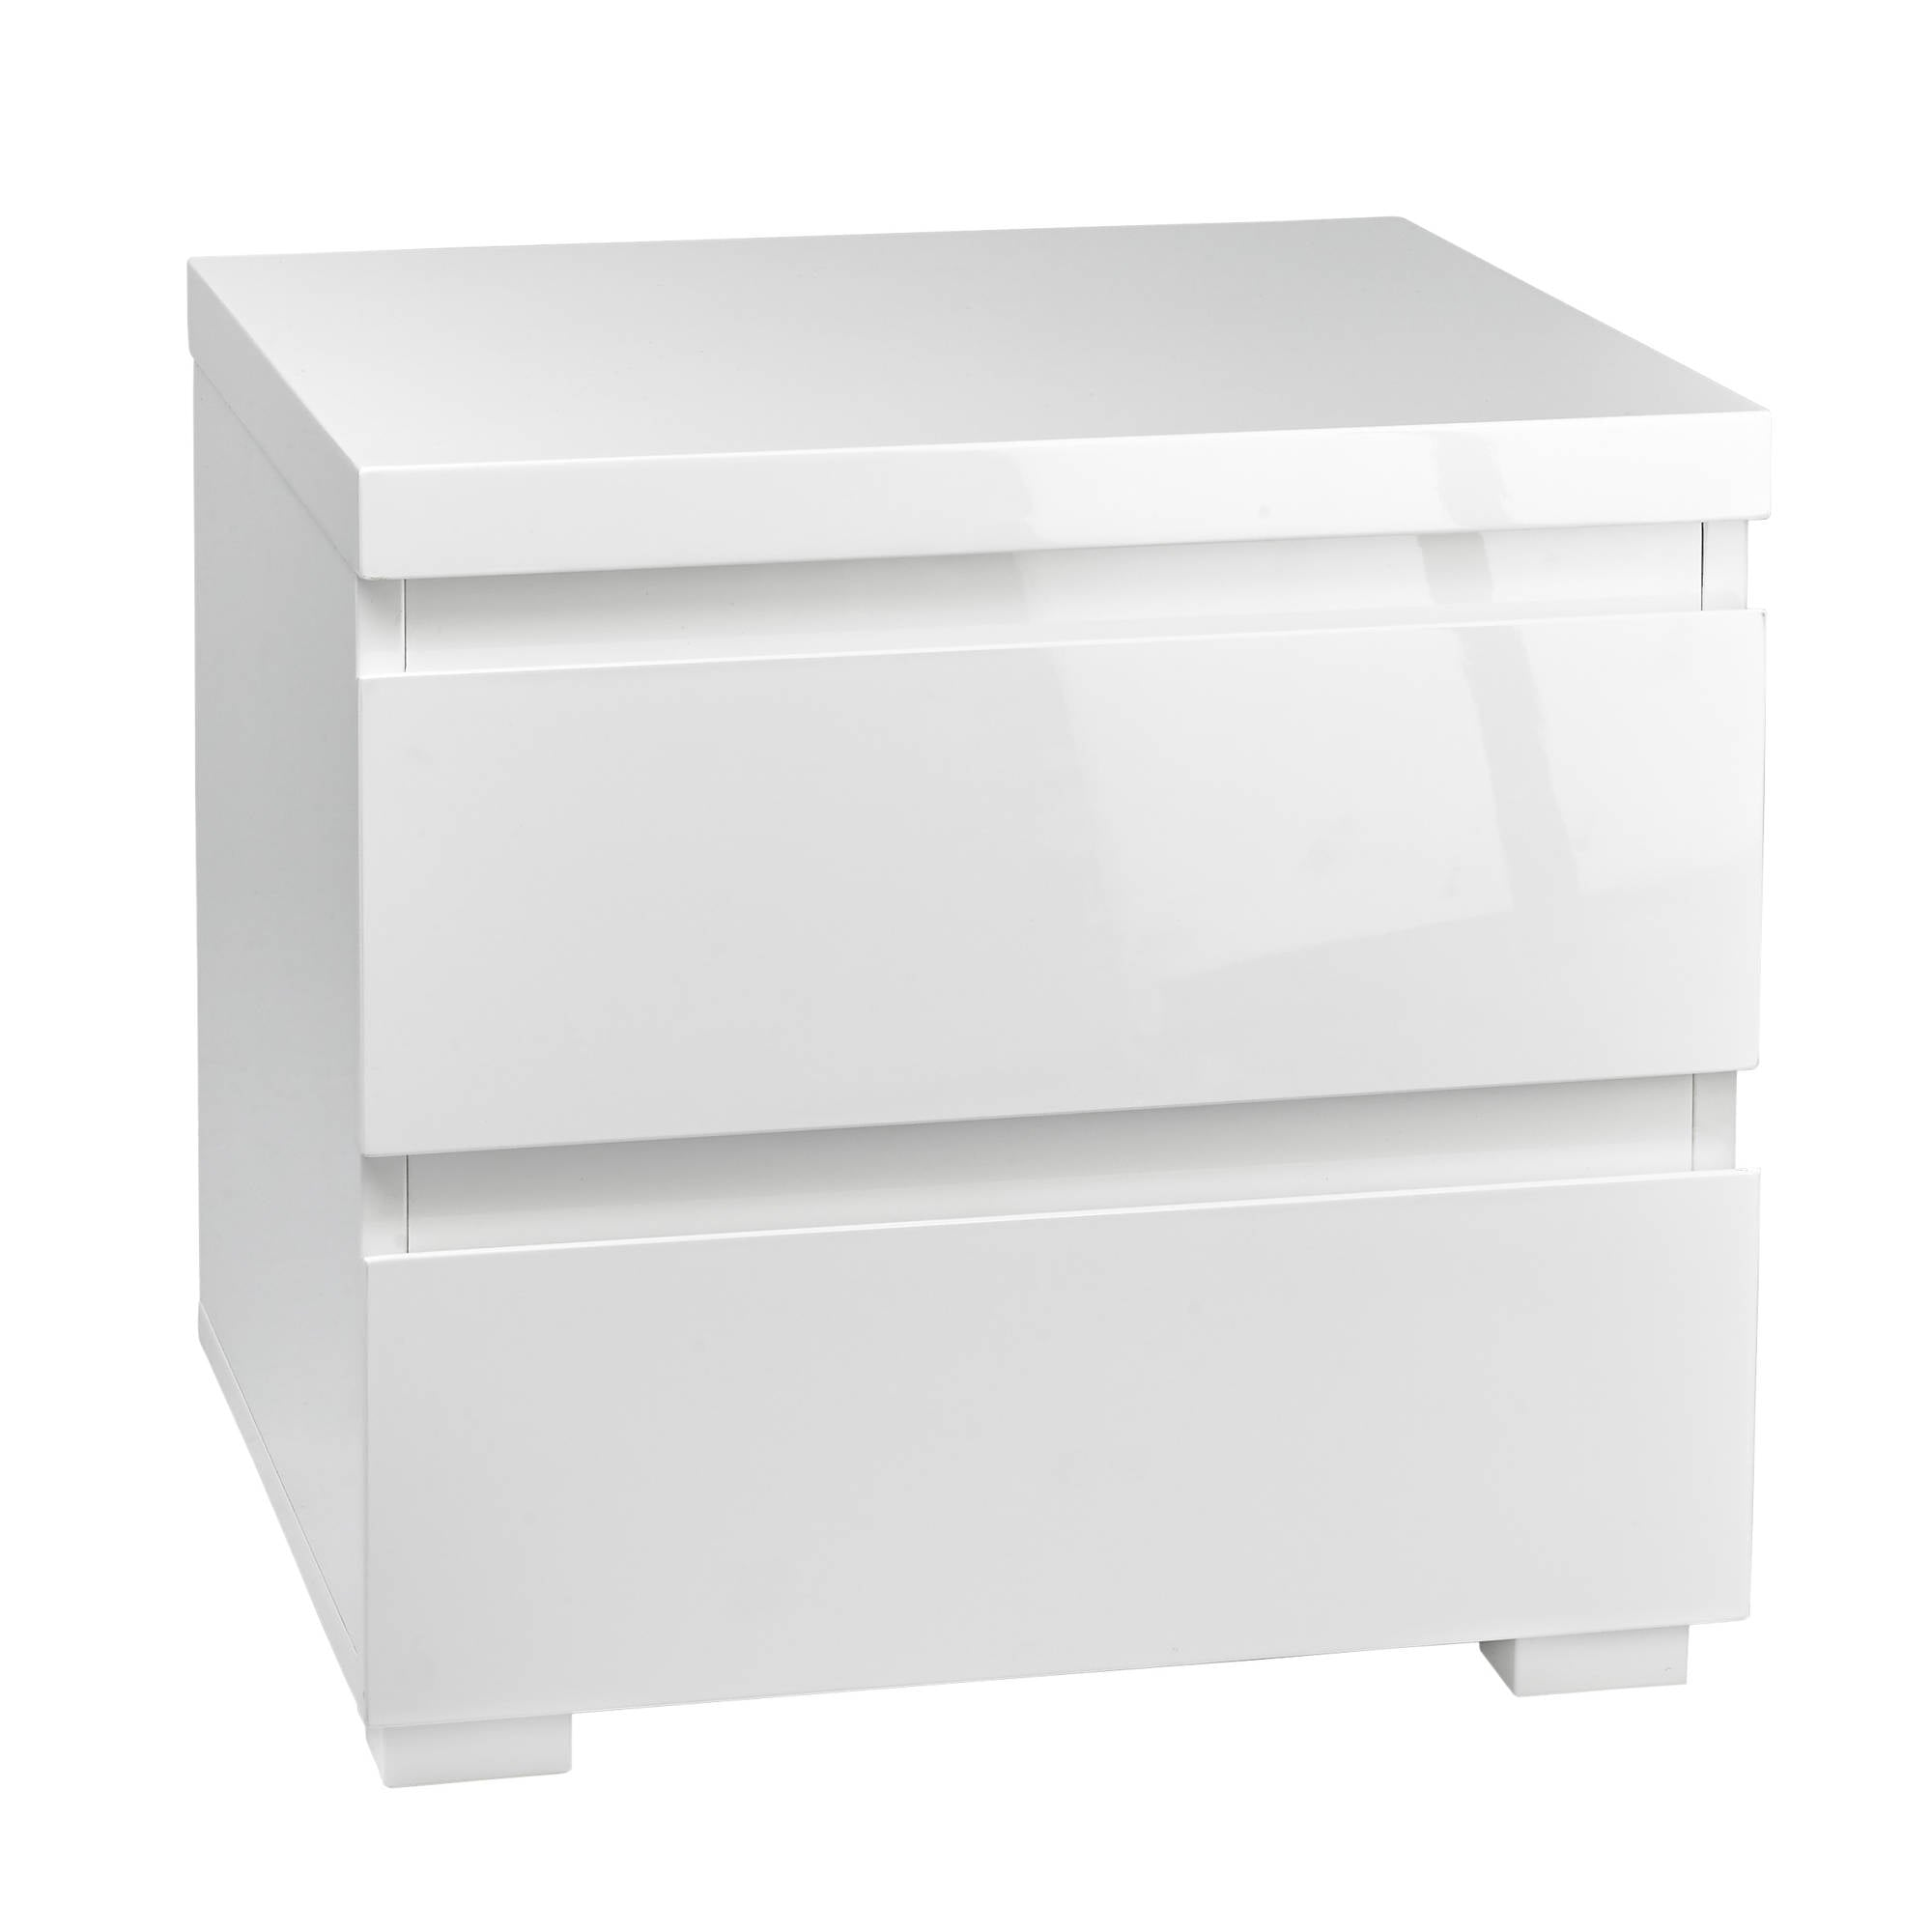 Cuba Bedside Table in White - Ezzo